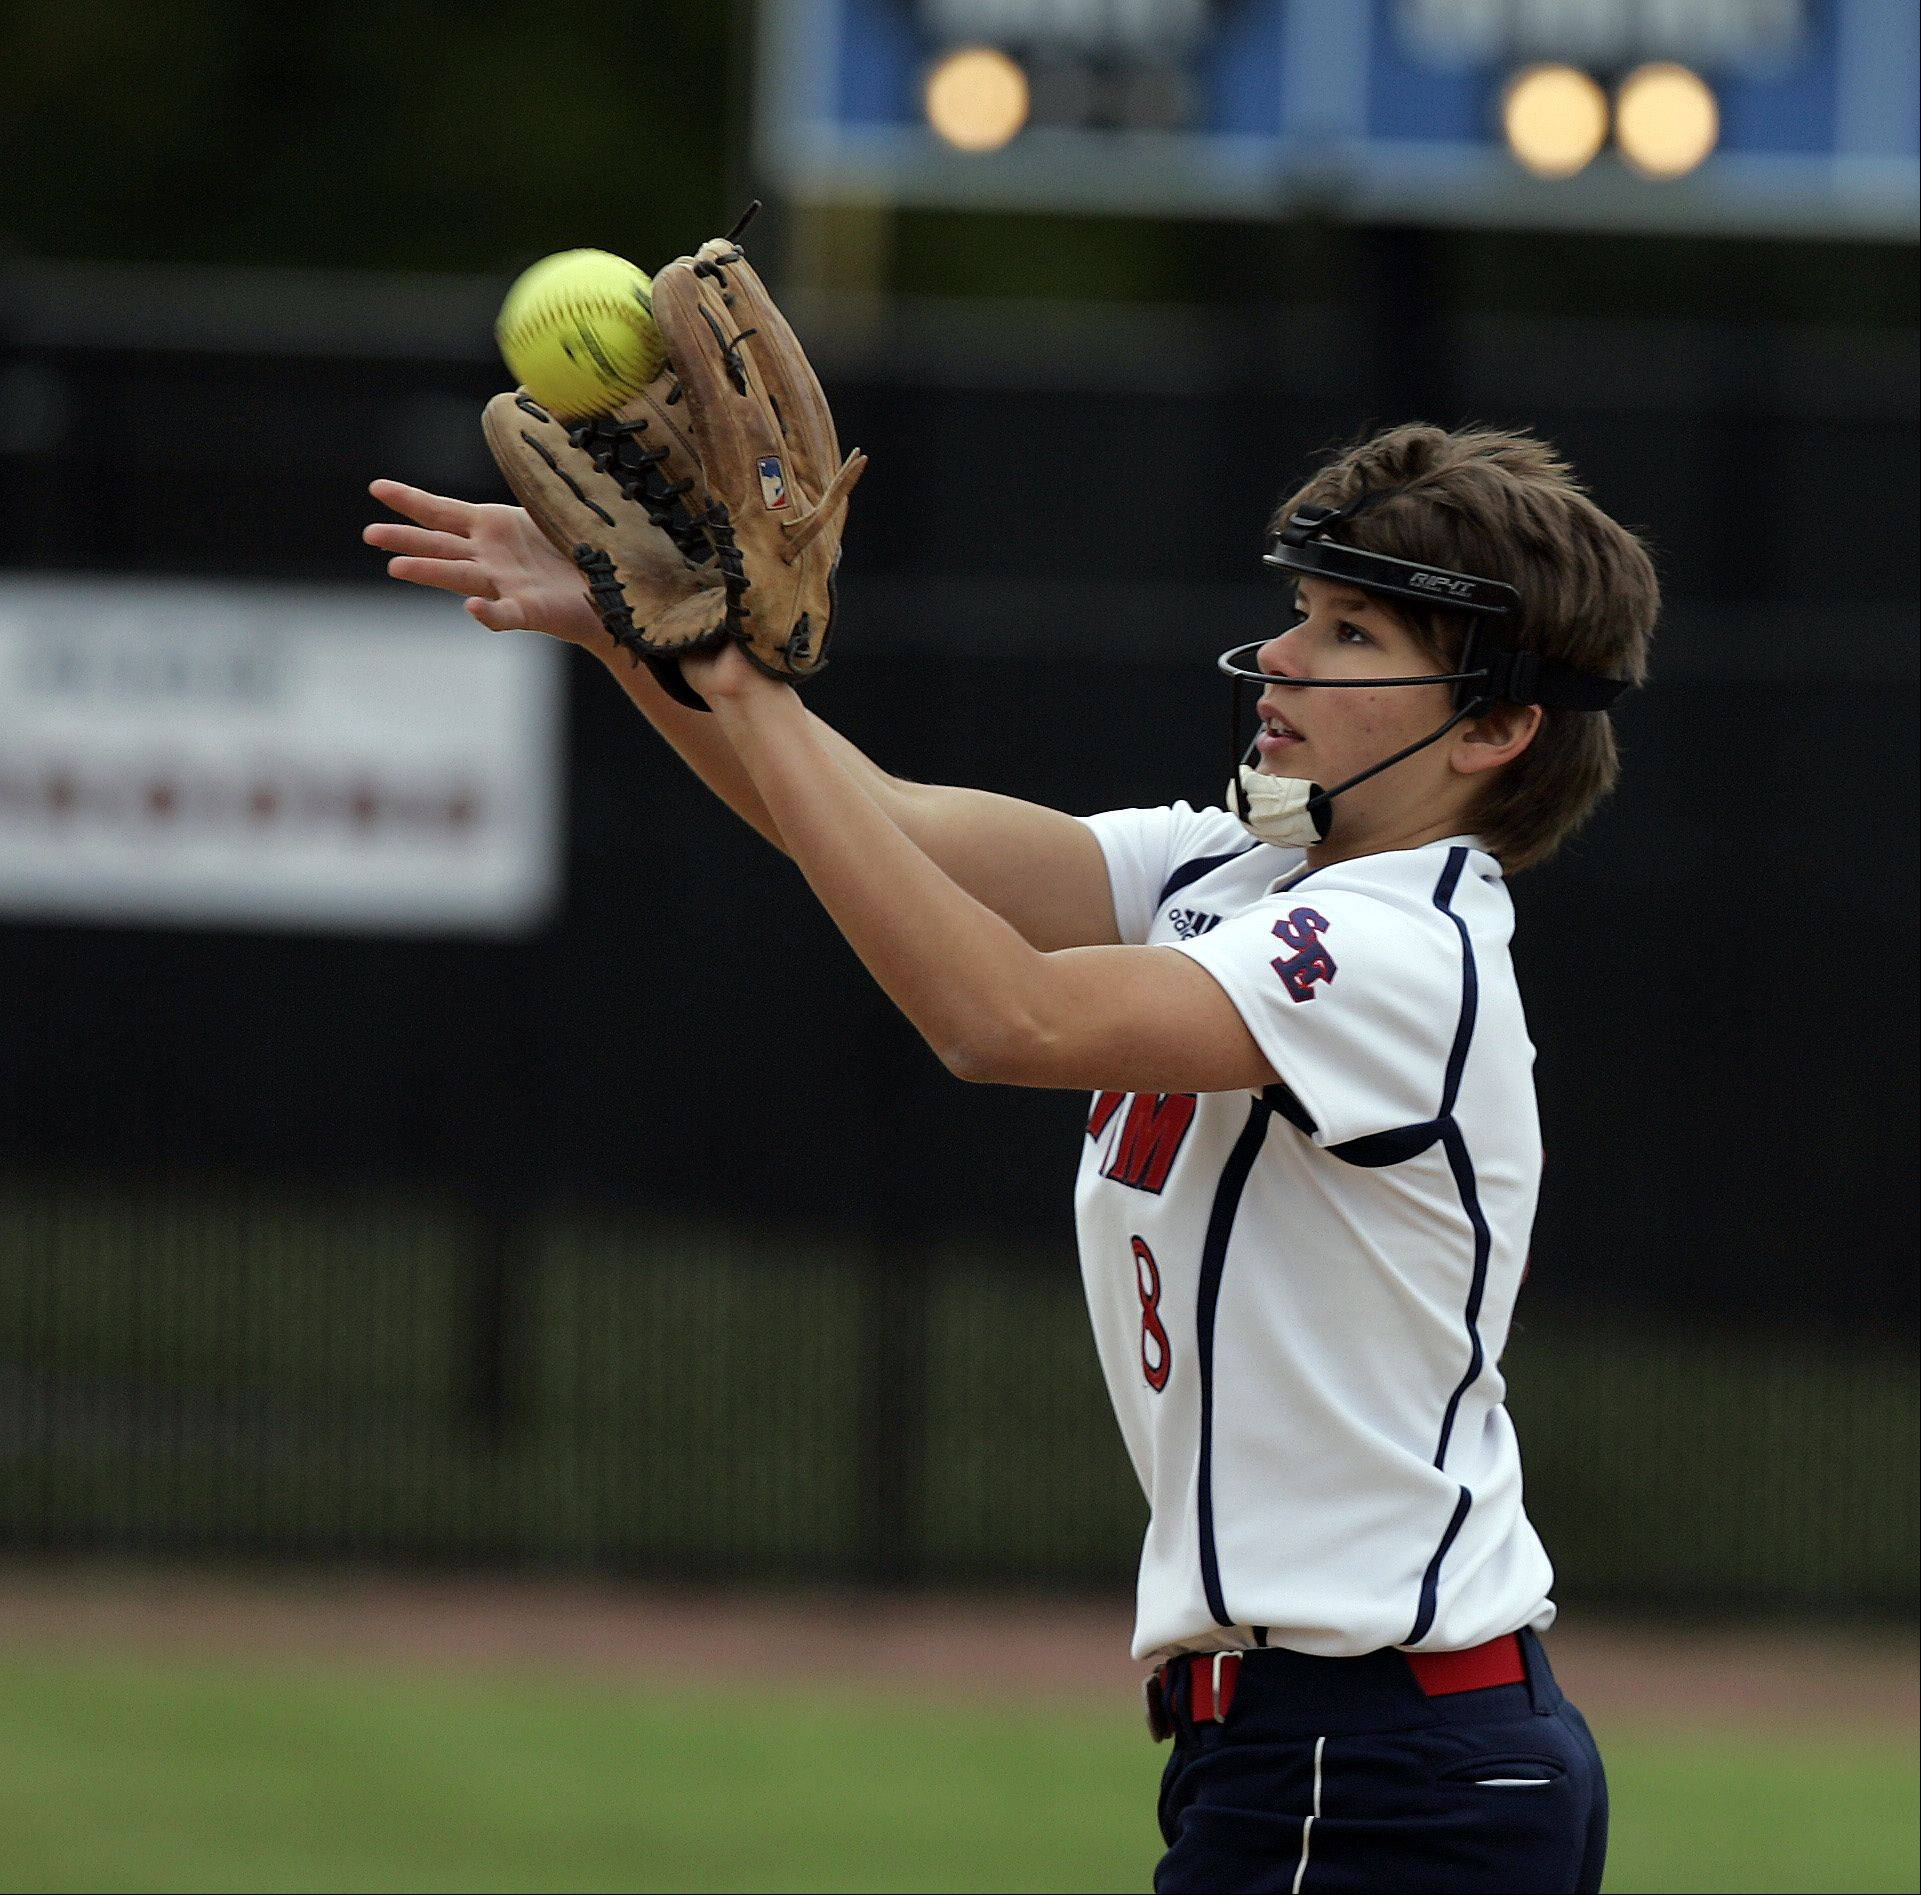 South Elgin senior Victoria Watt reels in a line drive during the Storm's 2-1 win over St. Charles North Saturday in St. Charles.